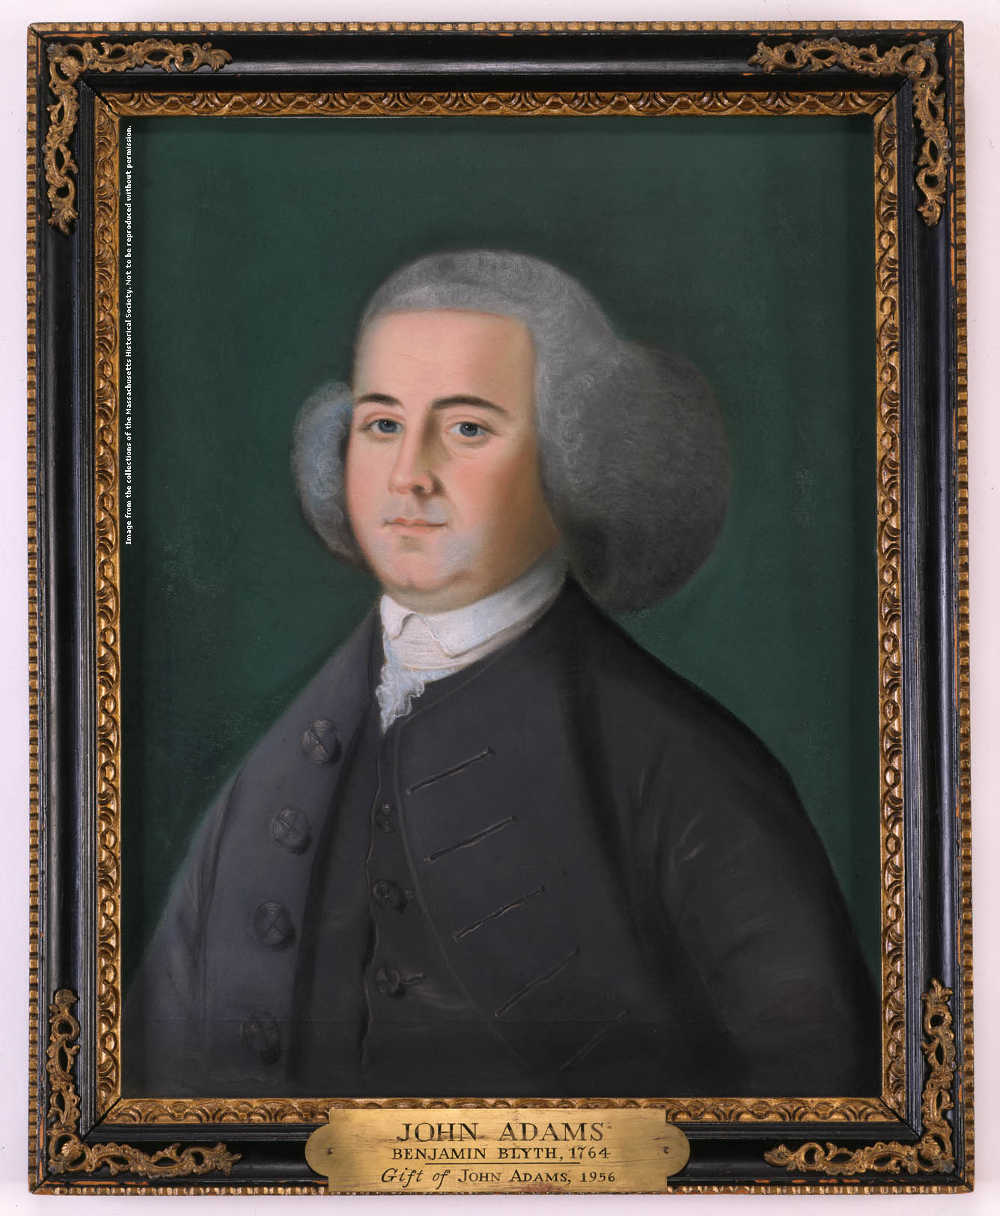 These pastel portraits of John and Abigail Adams (c.1766) were made by Benjamin Blyth of Salem. They are the earliest known likenesses of the couple. Image courtesy of the Massachusetts Historical Society.